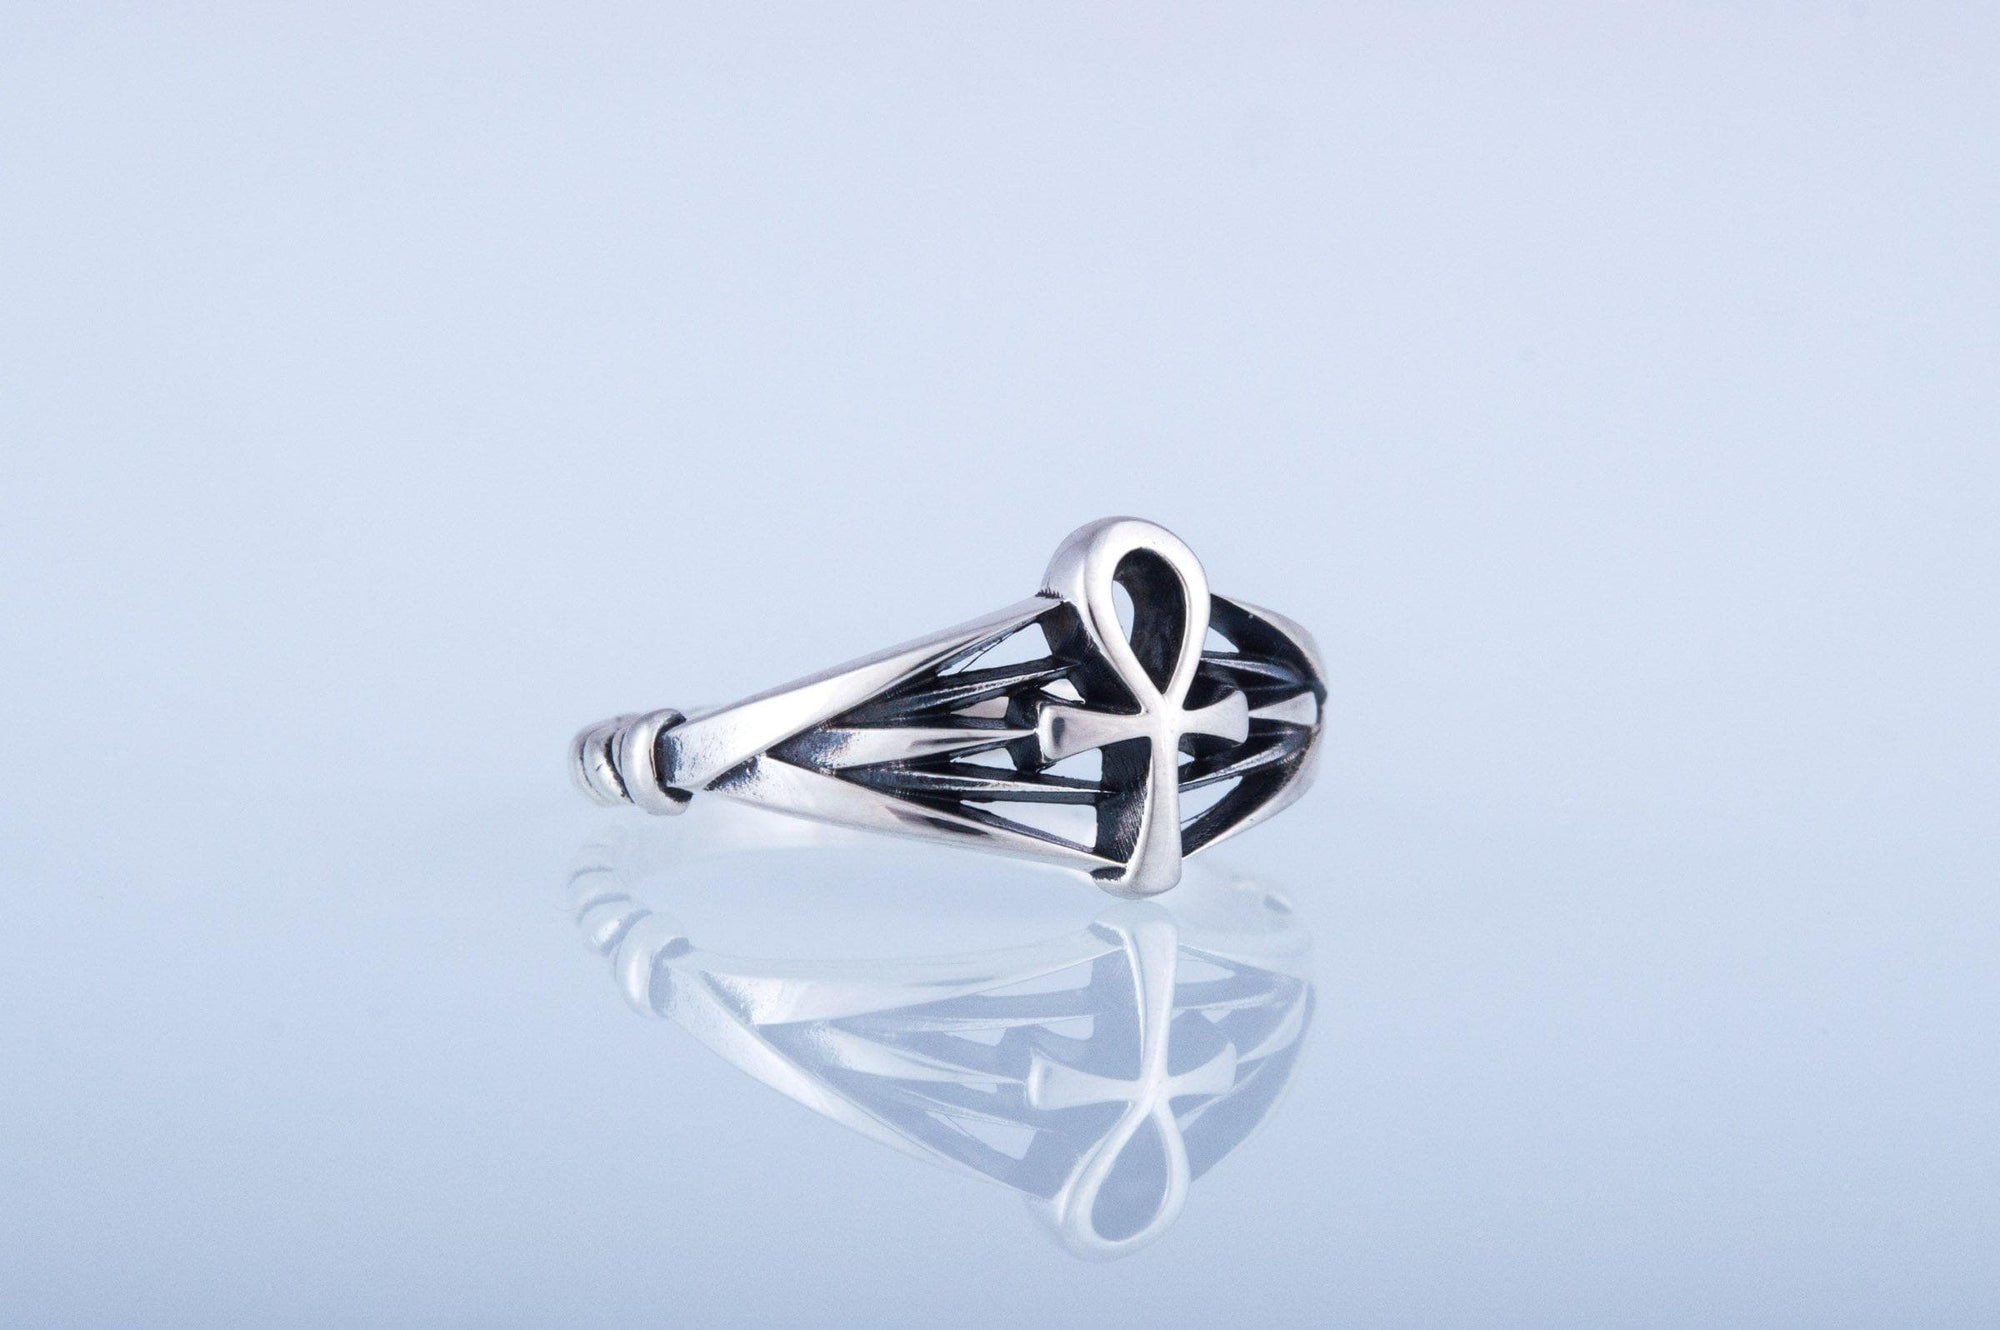 Rings Ancient Egypt Ankh Sterling Silver Ring Ancient Treasures Ancientreasures Viking Odin Thor Mjolnir Celtic Ancient Egypt Norse Norse Mythology